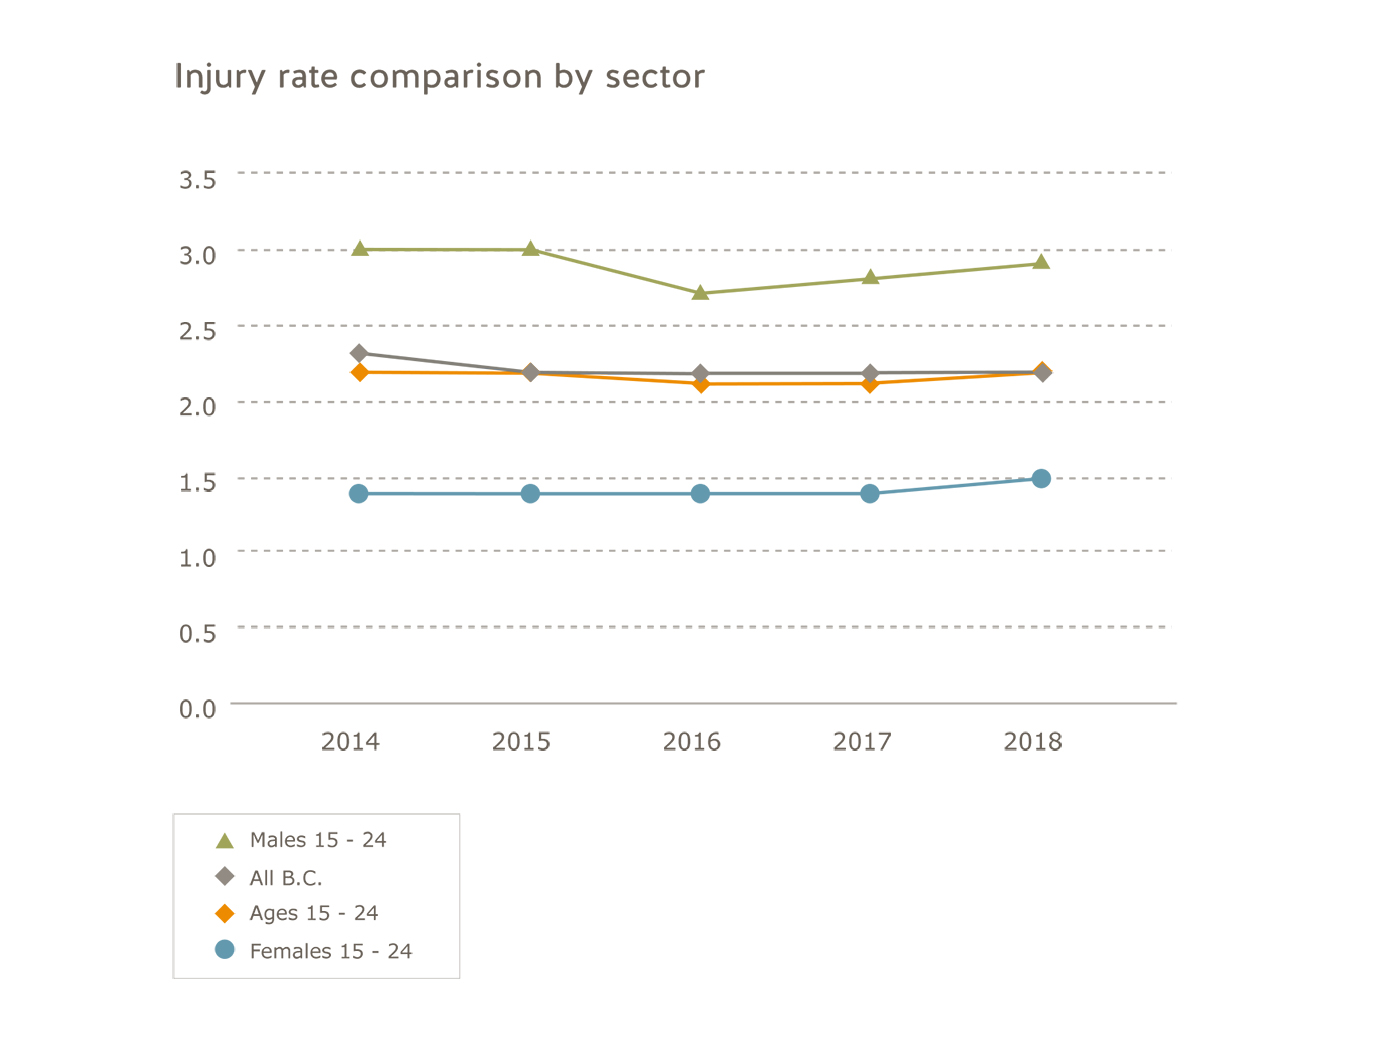 Young and new workers injury rate comparison by sector for 2014 to 2018.